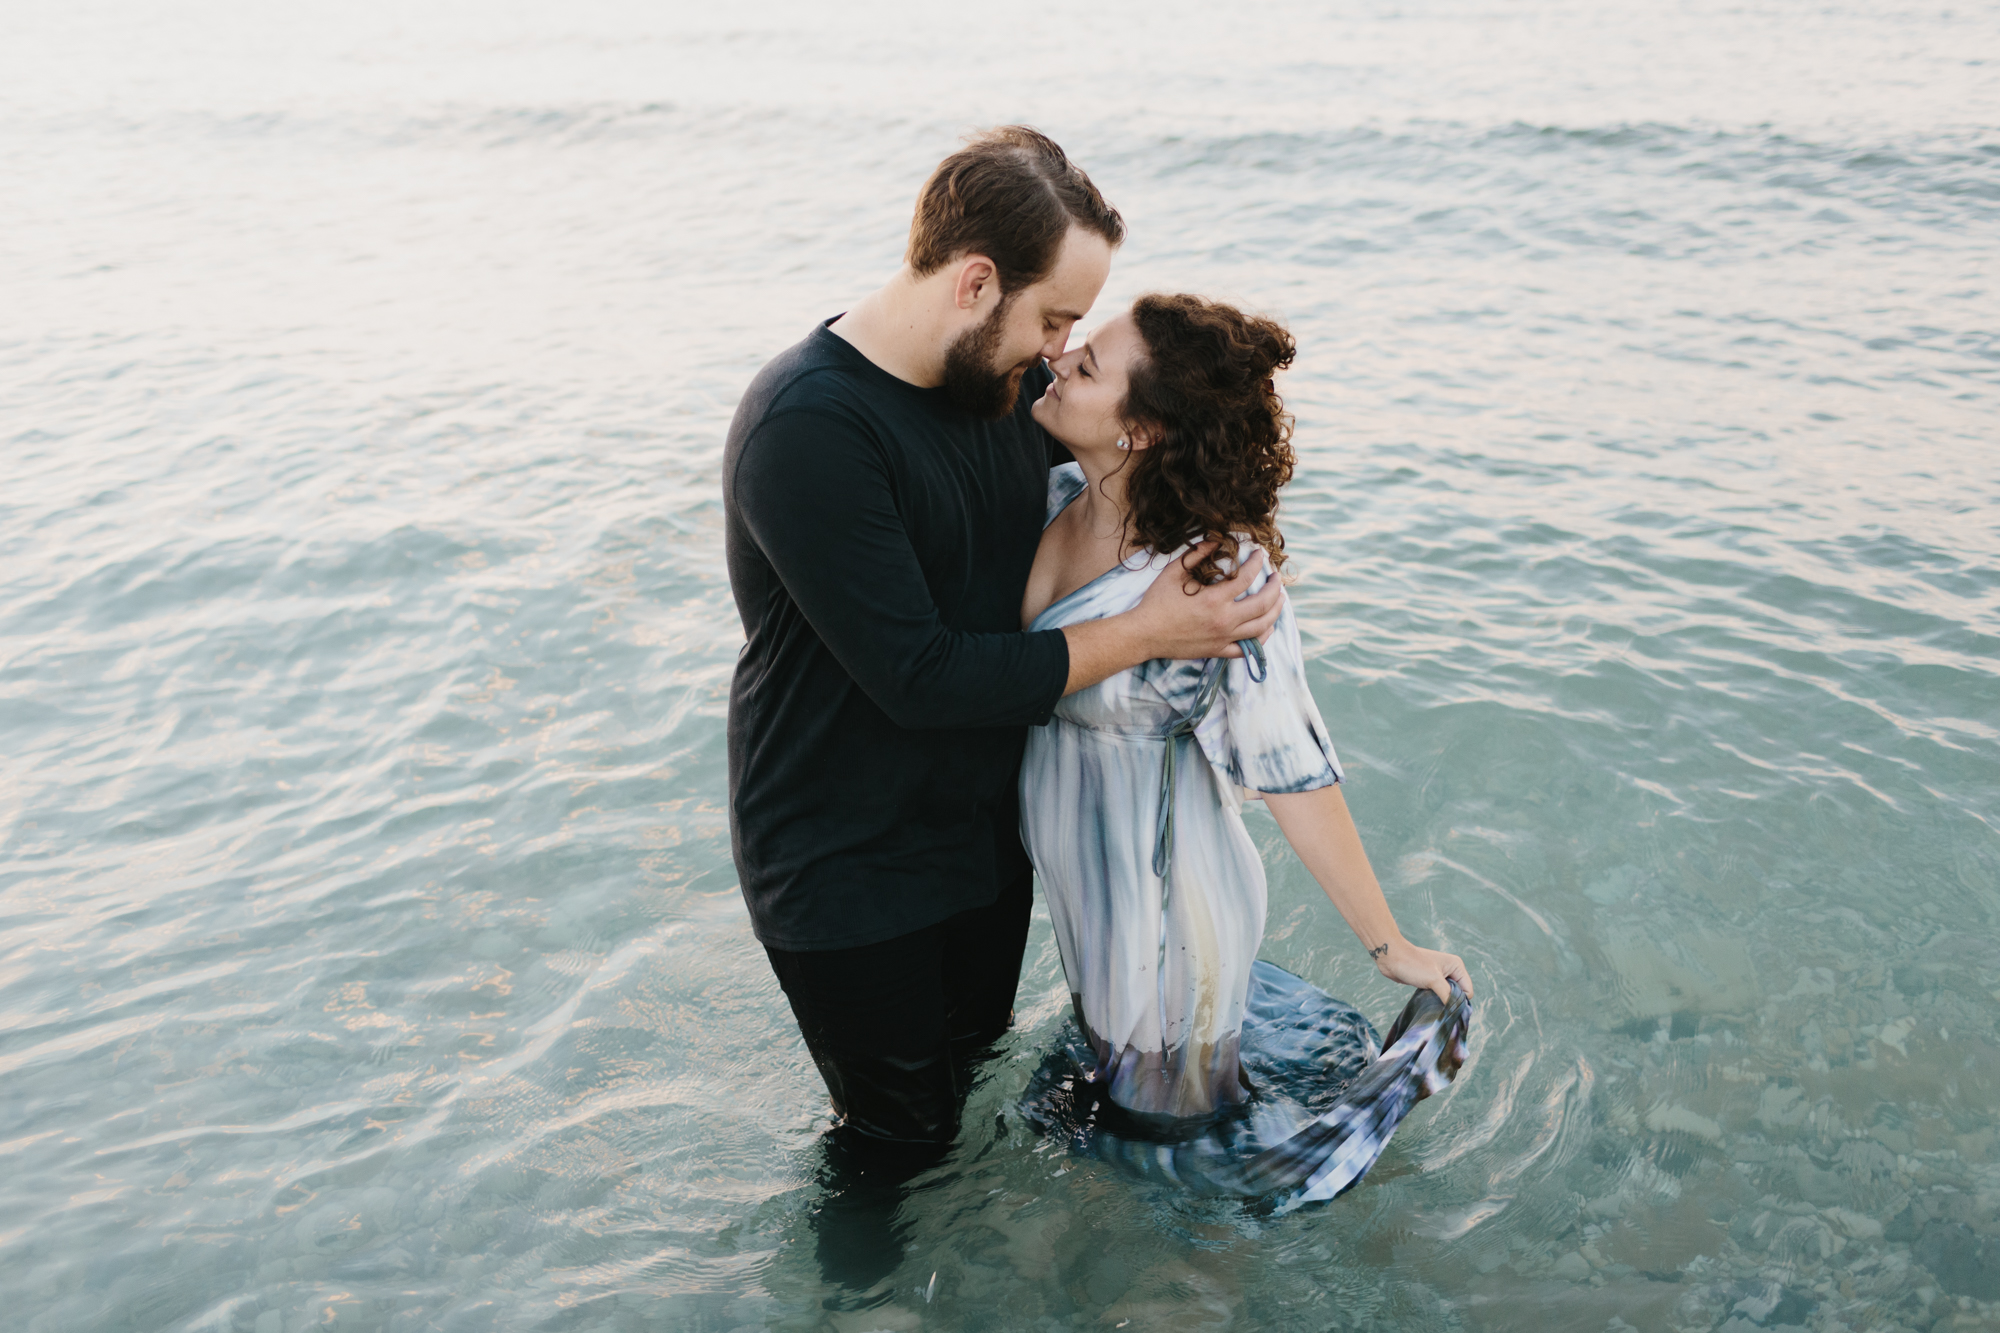 Northern Michigan Sleeping Bear Dunes Wedding Engagement Photographer Mae Stier-040.jpg